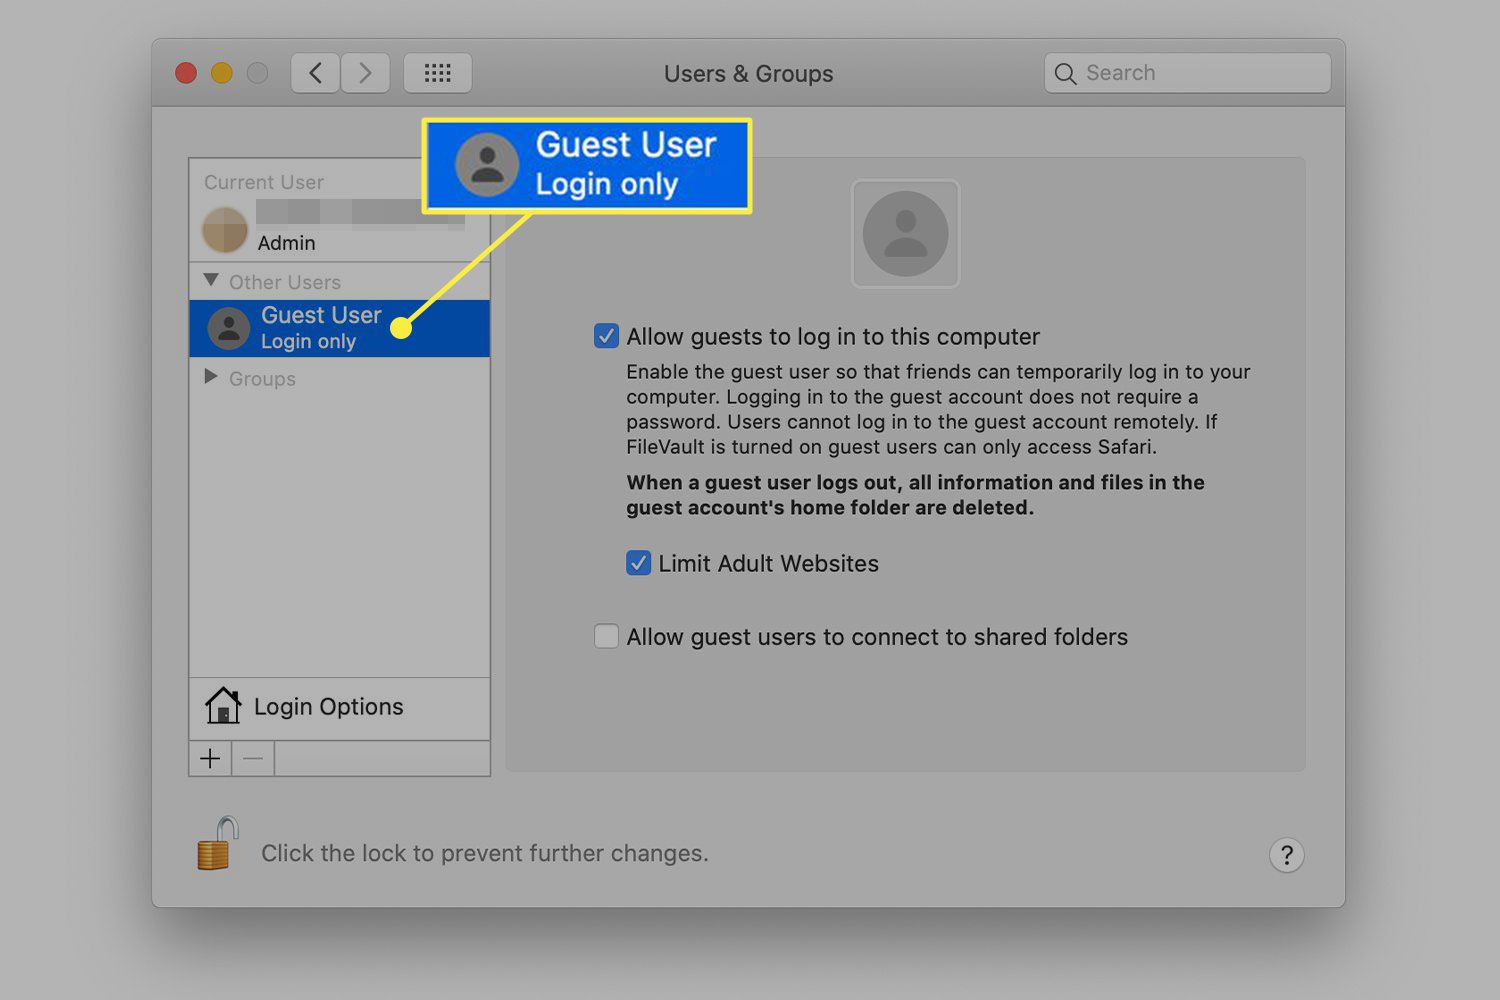 A screenshot of the Users & Groups window in macOS with the Guest User item highlighted